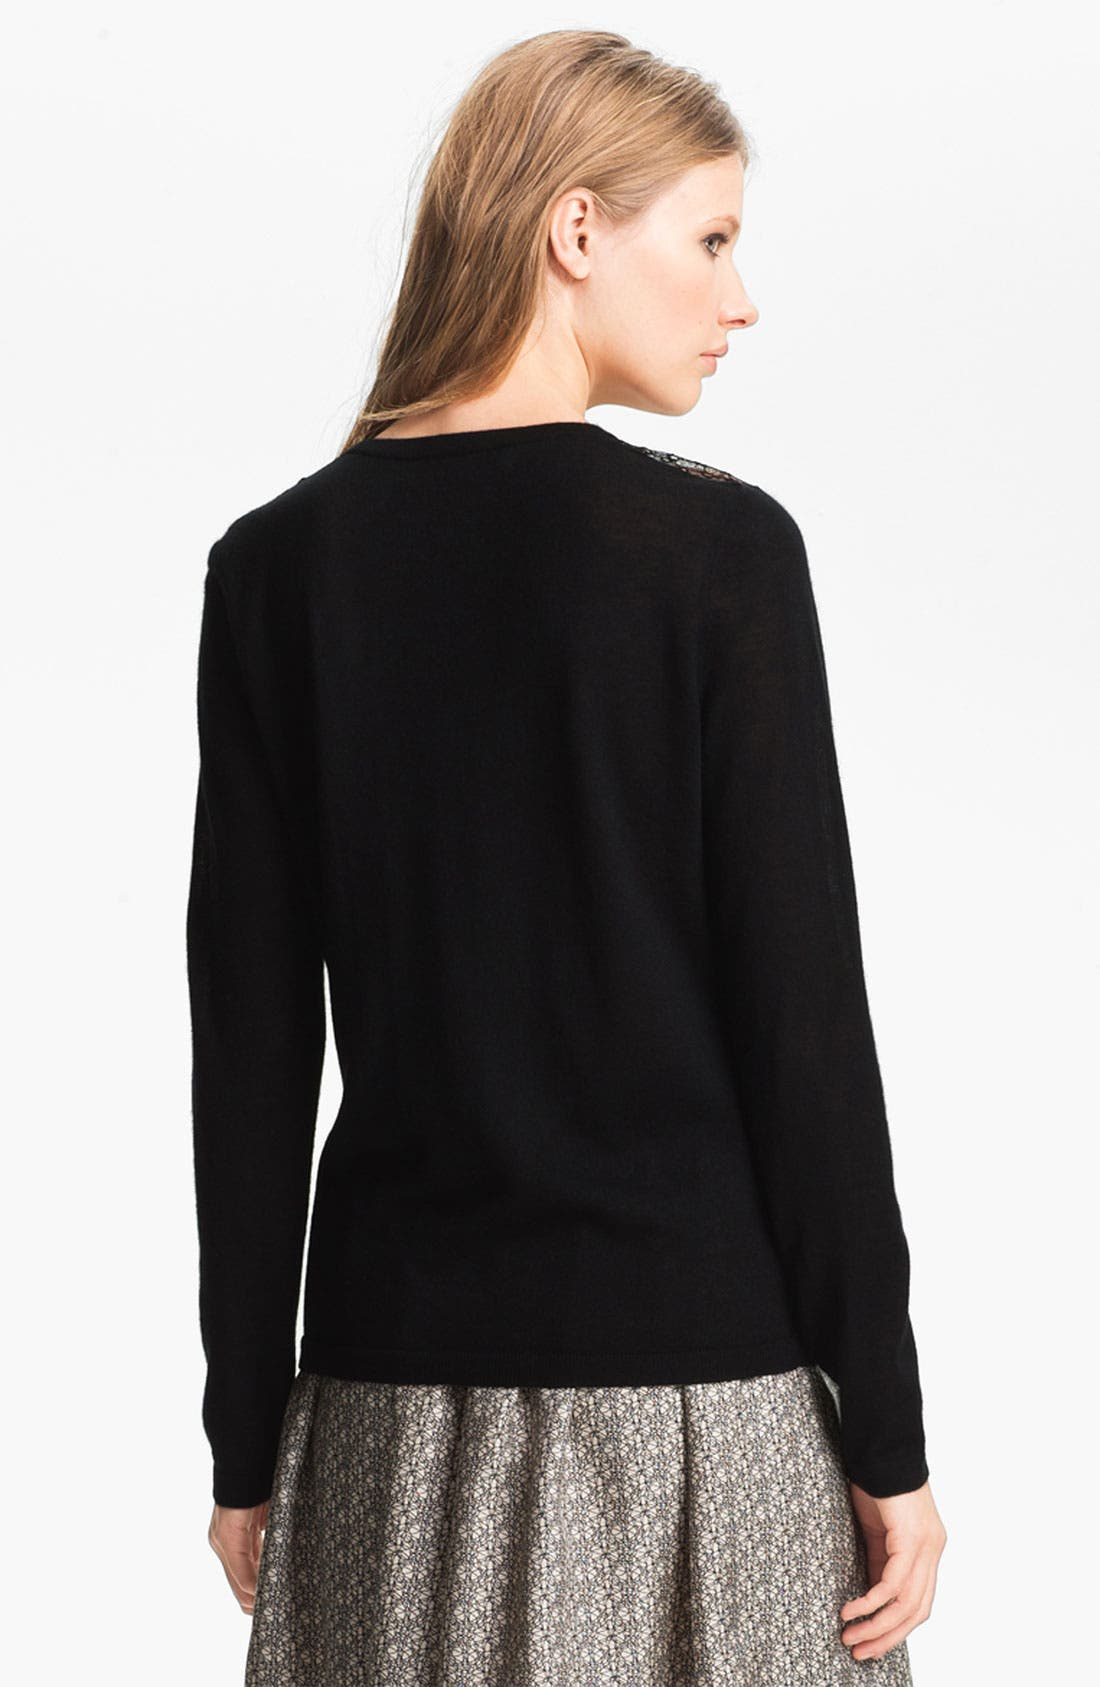 Alternate Image 3  - Miss Wu 'Sofie' Lace Yoke Cashmere Sweater (Nordstrom Exclusive)